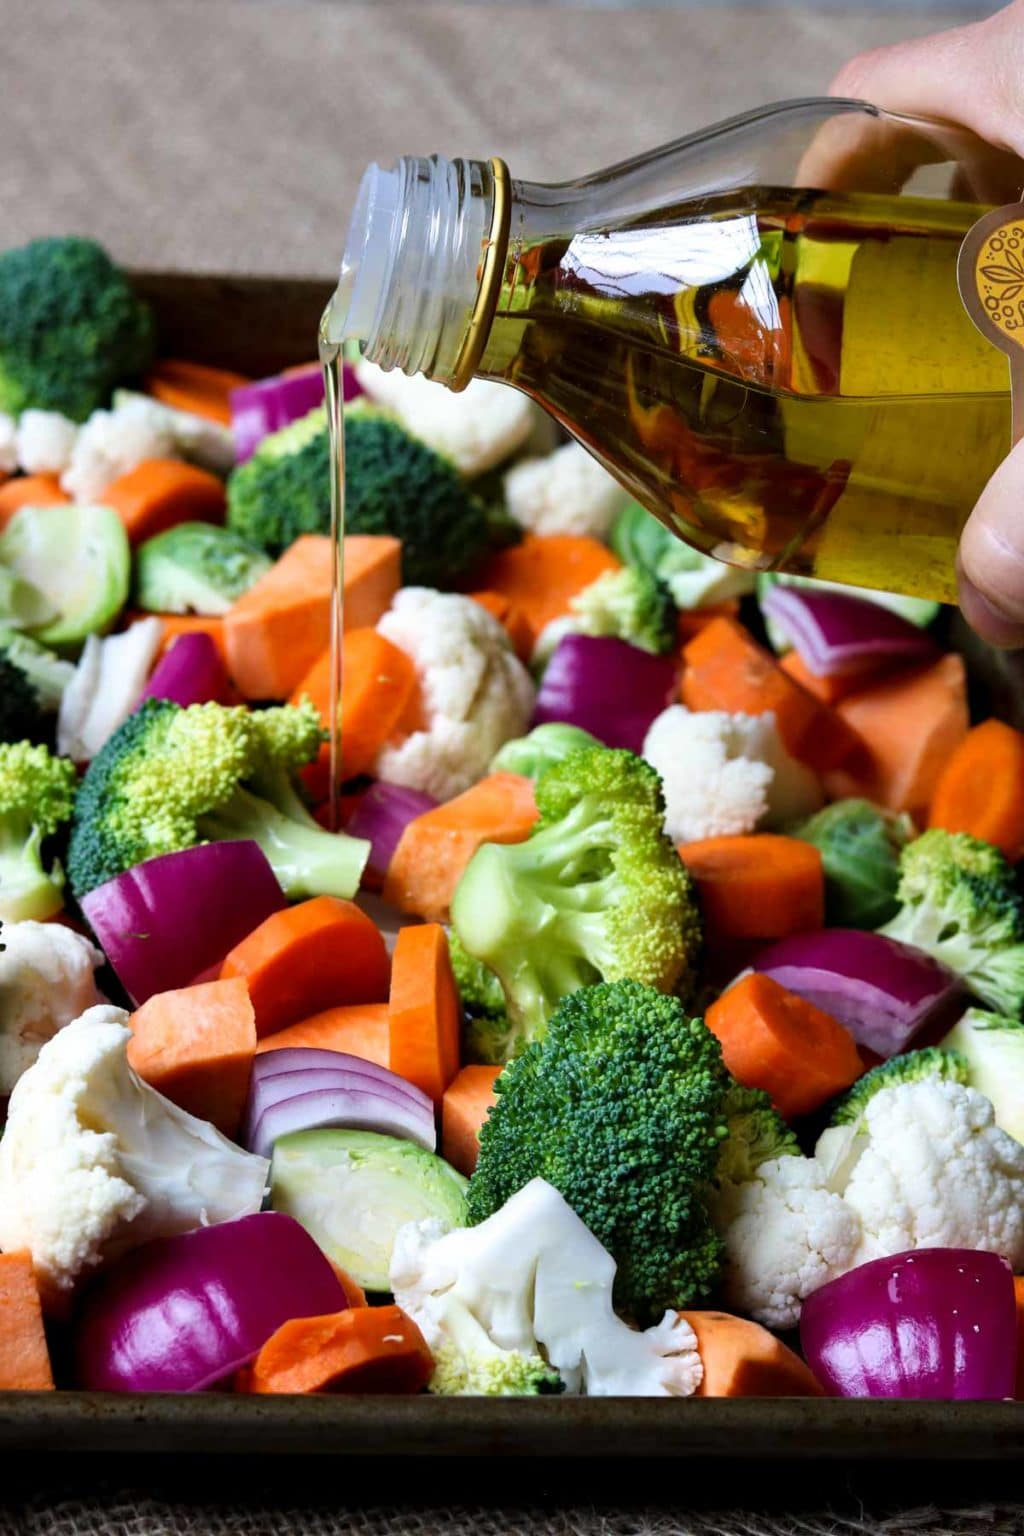 Olive oil being drizzled on cut veggies on a sheet pan